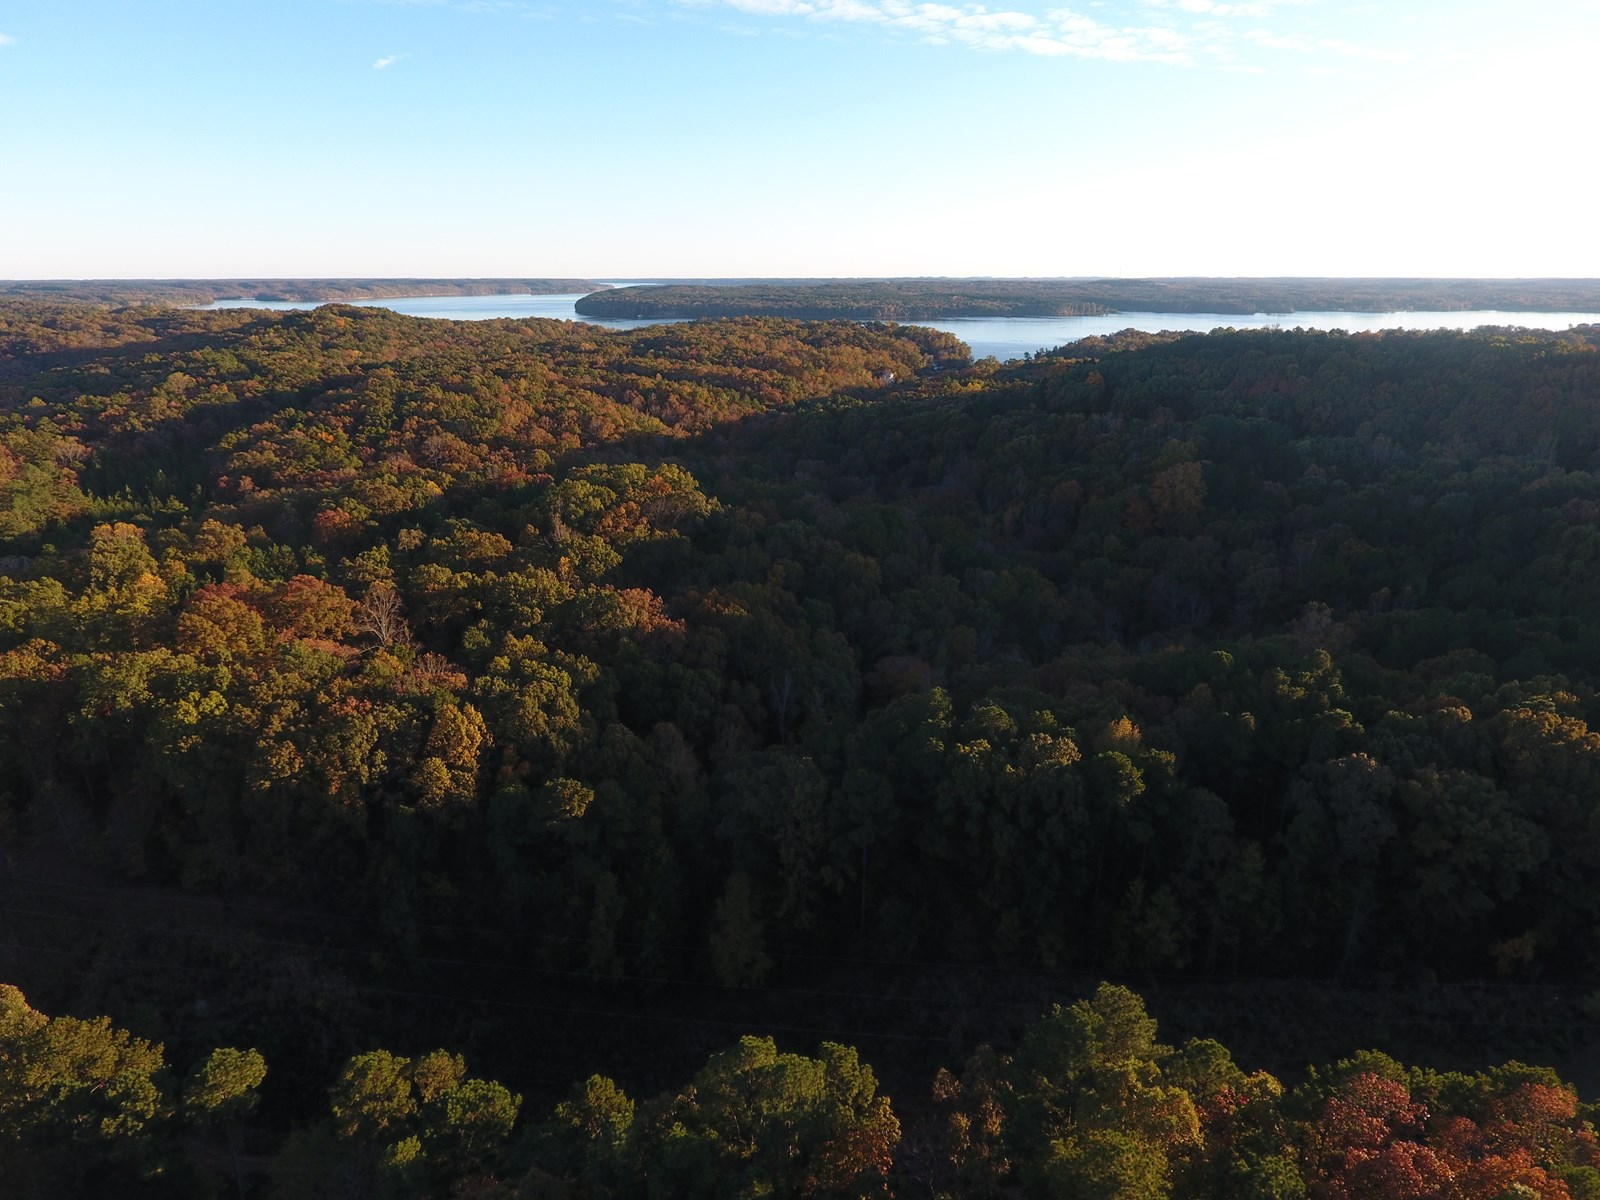 Land for Sale near Pickwick Lake